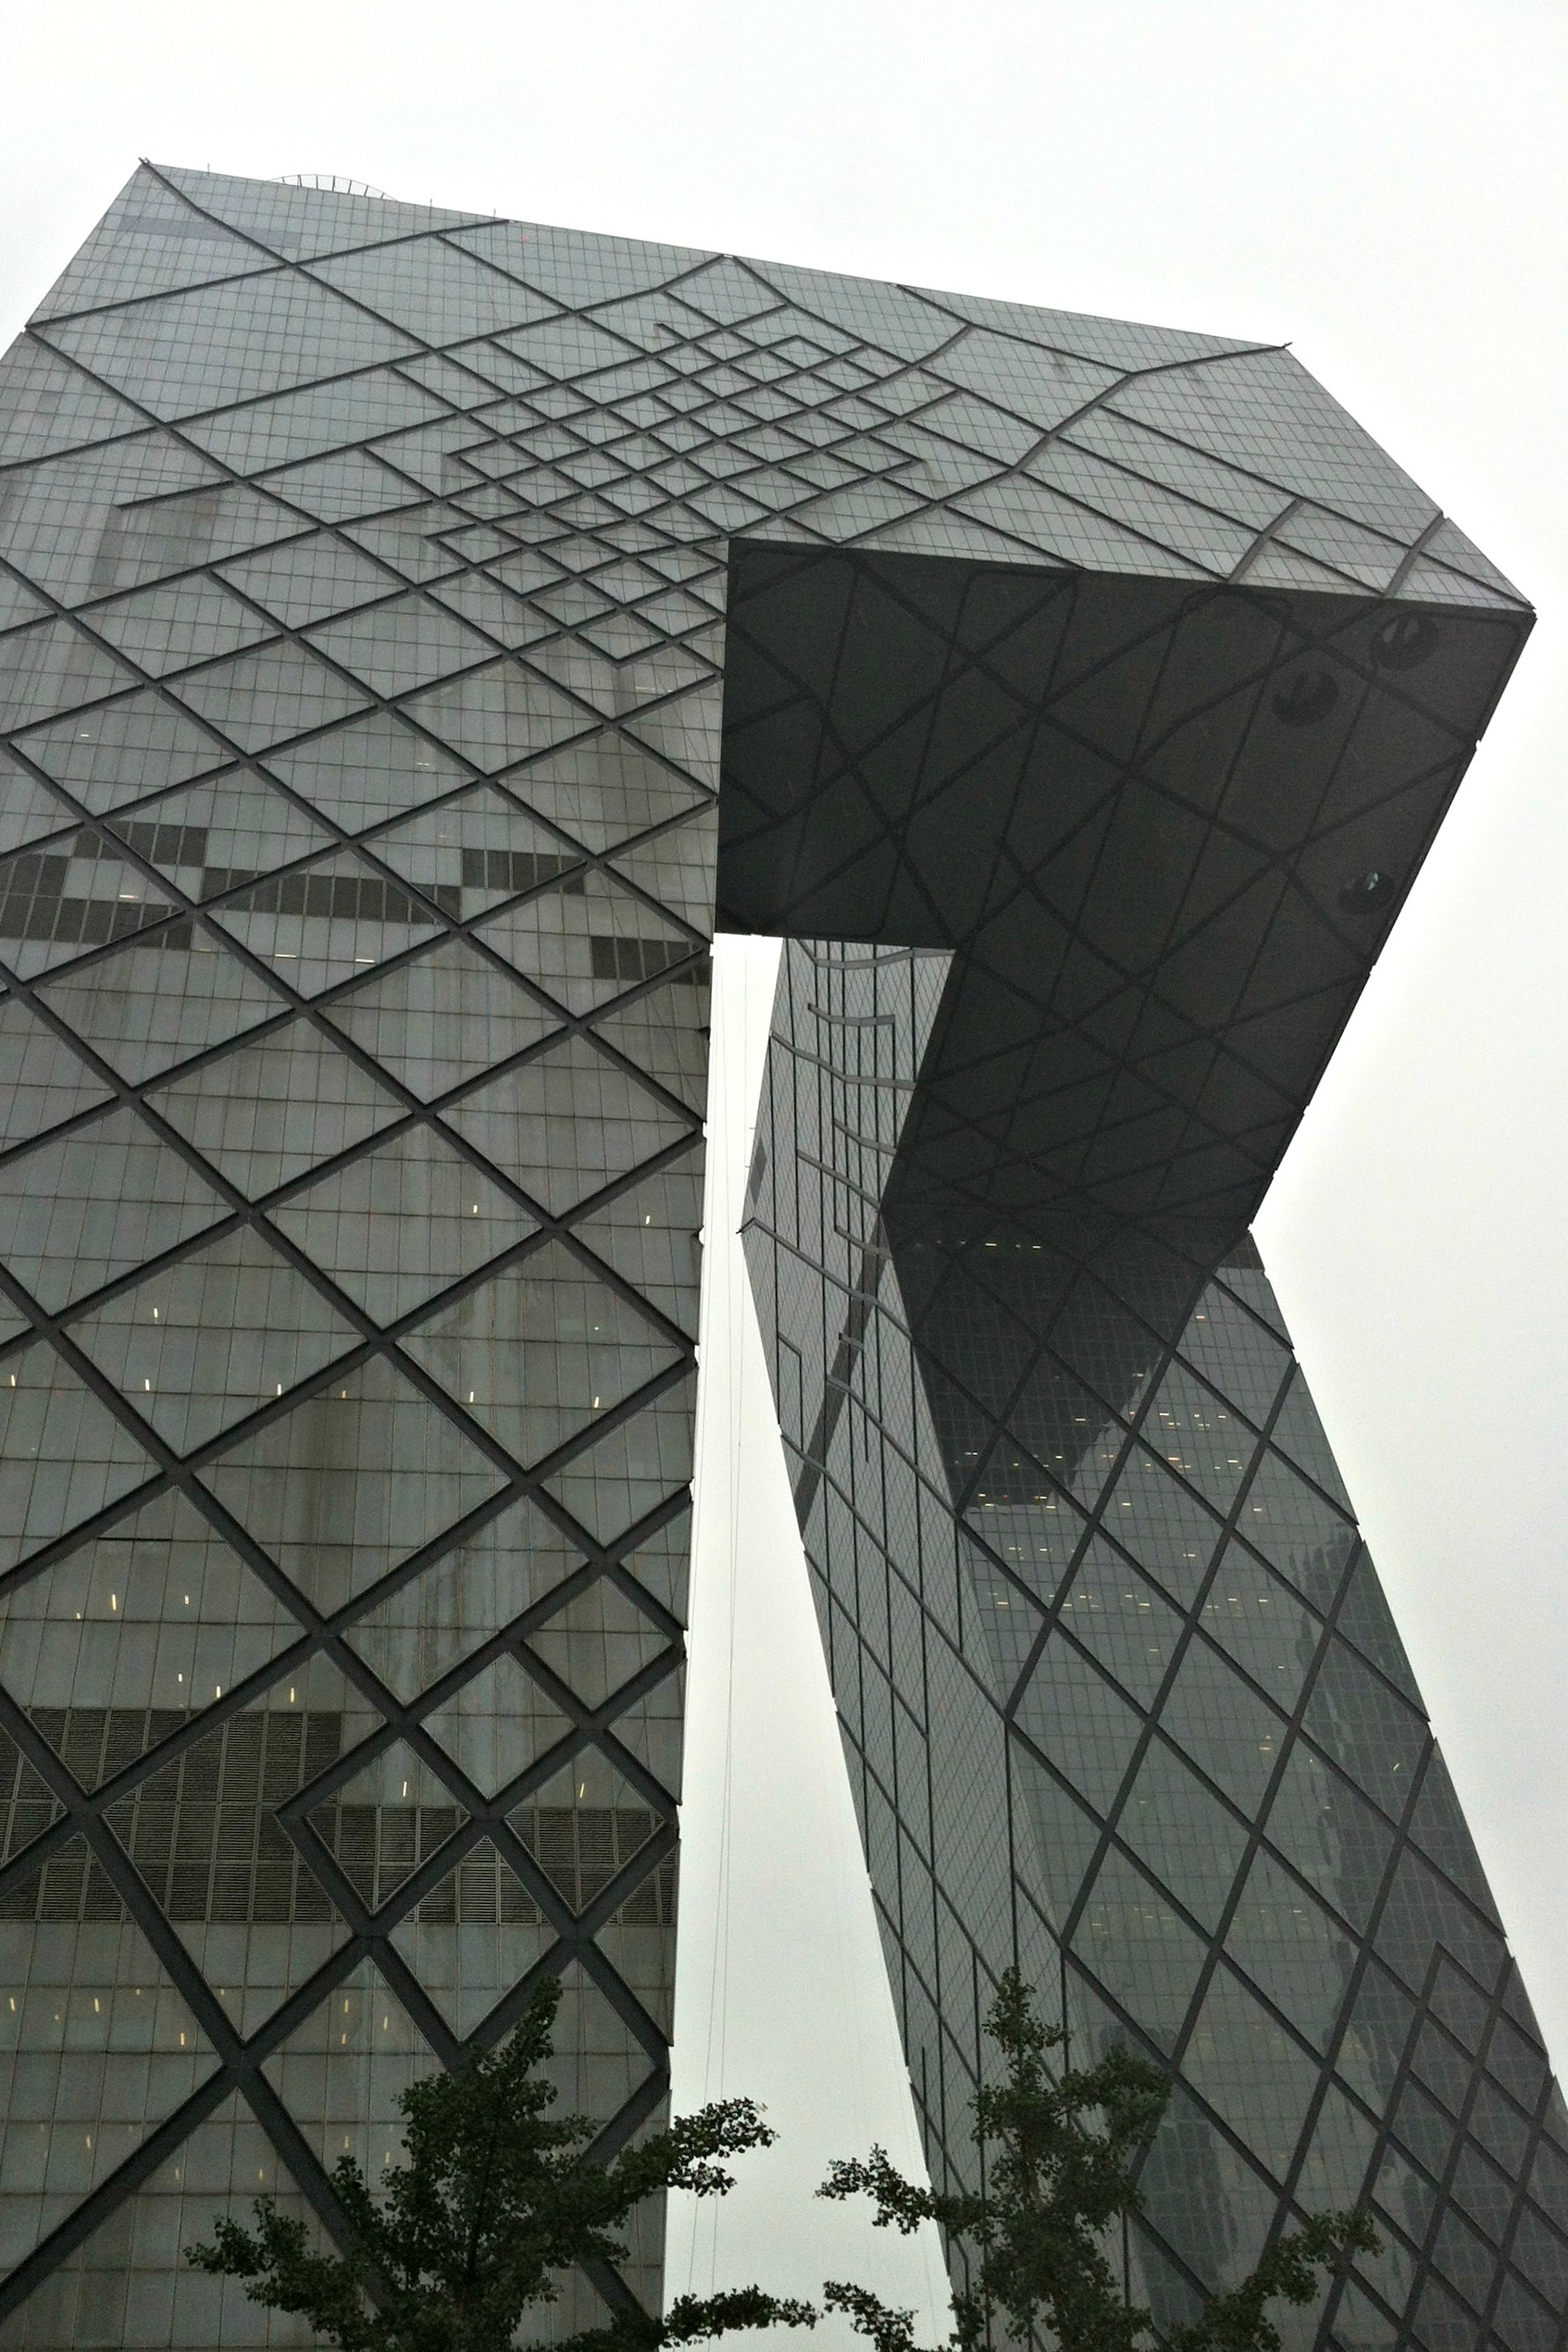 beijing china bank skyscraper building office city architecture business modern